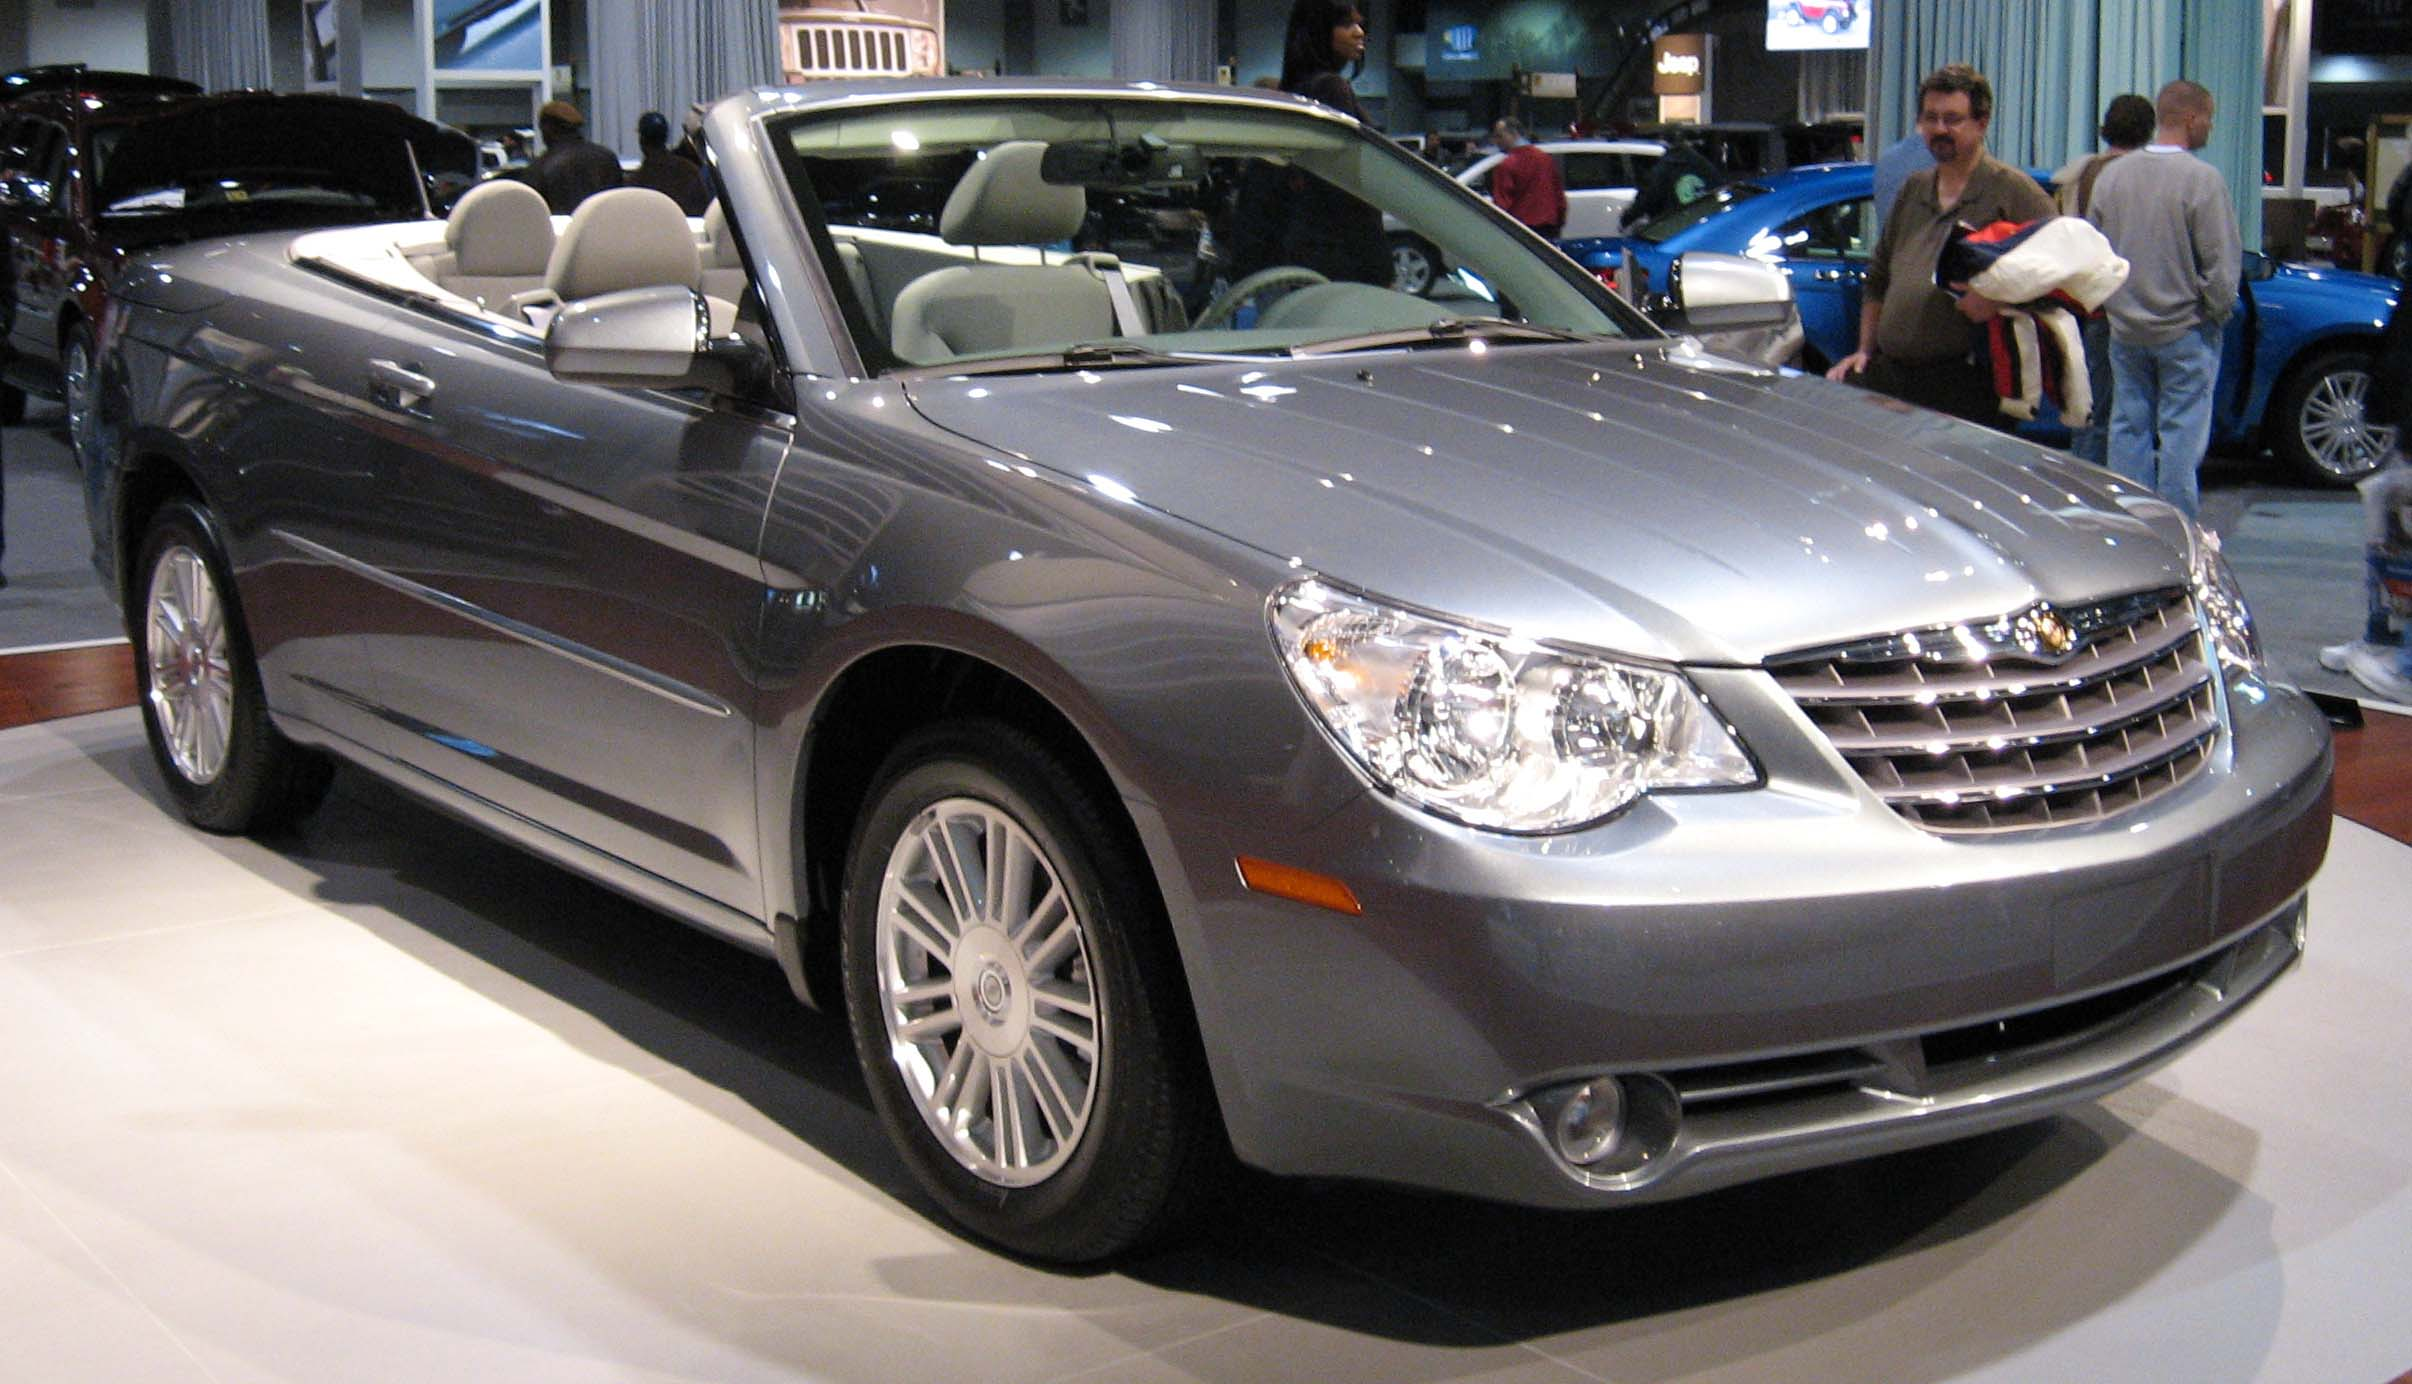 Chrysler Sebring 2008 #3